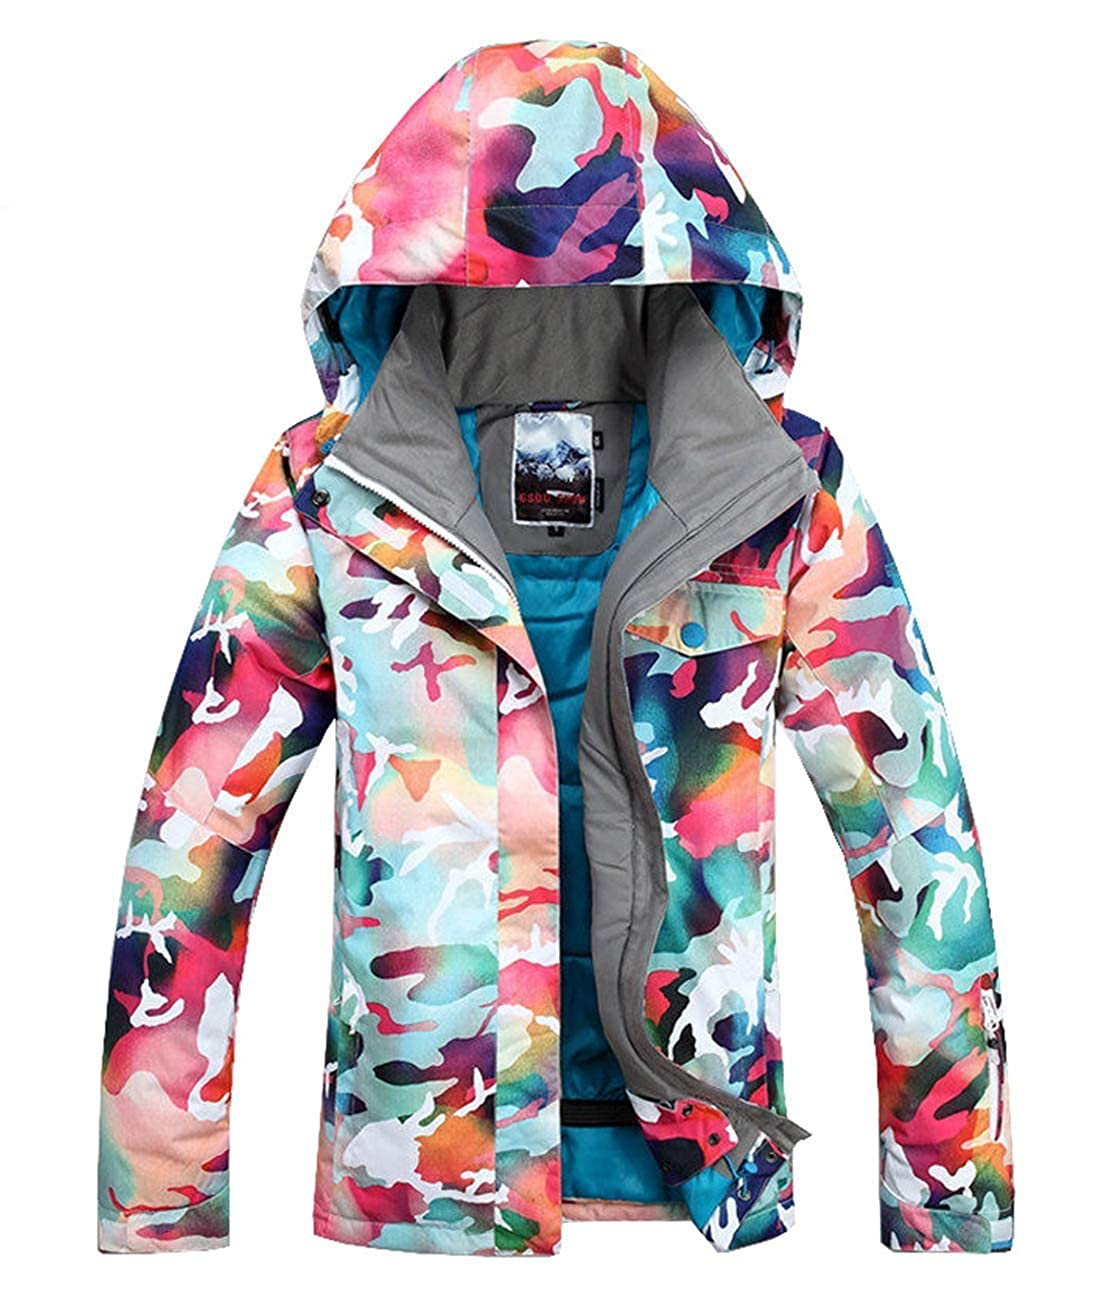 Image of Women's Insulated Waterproof Ski & Snowboard Jacket Bright Colored Windproof Snow Coat